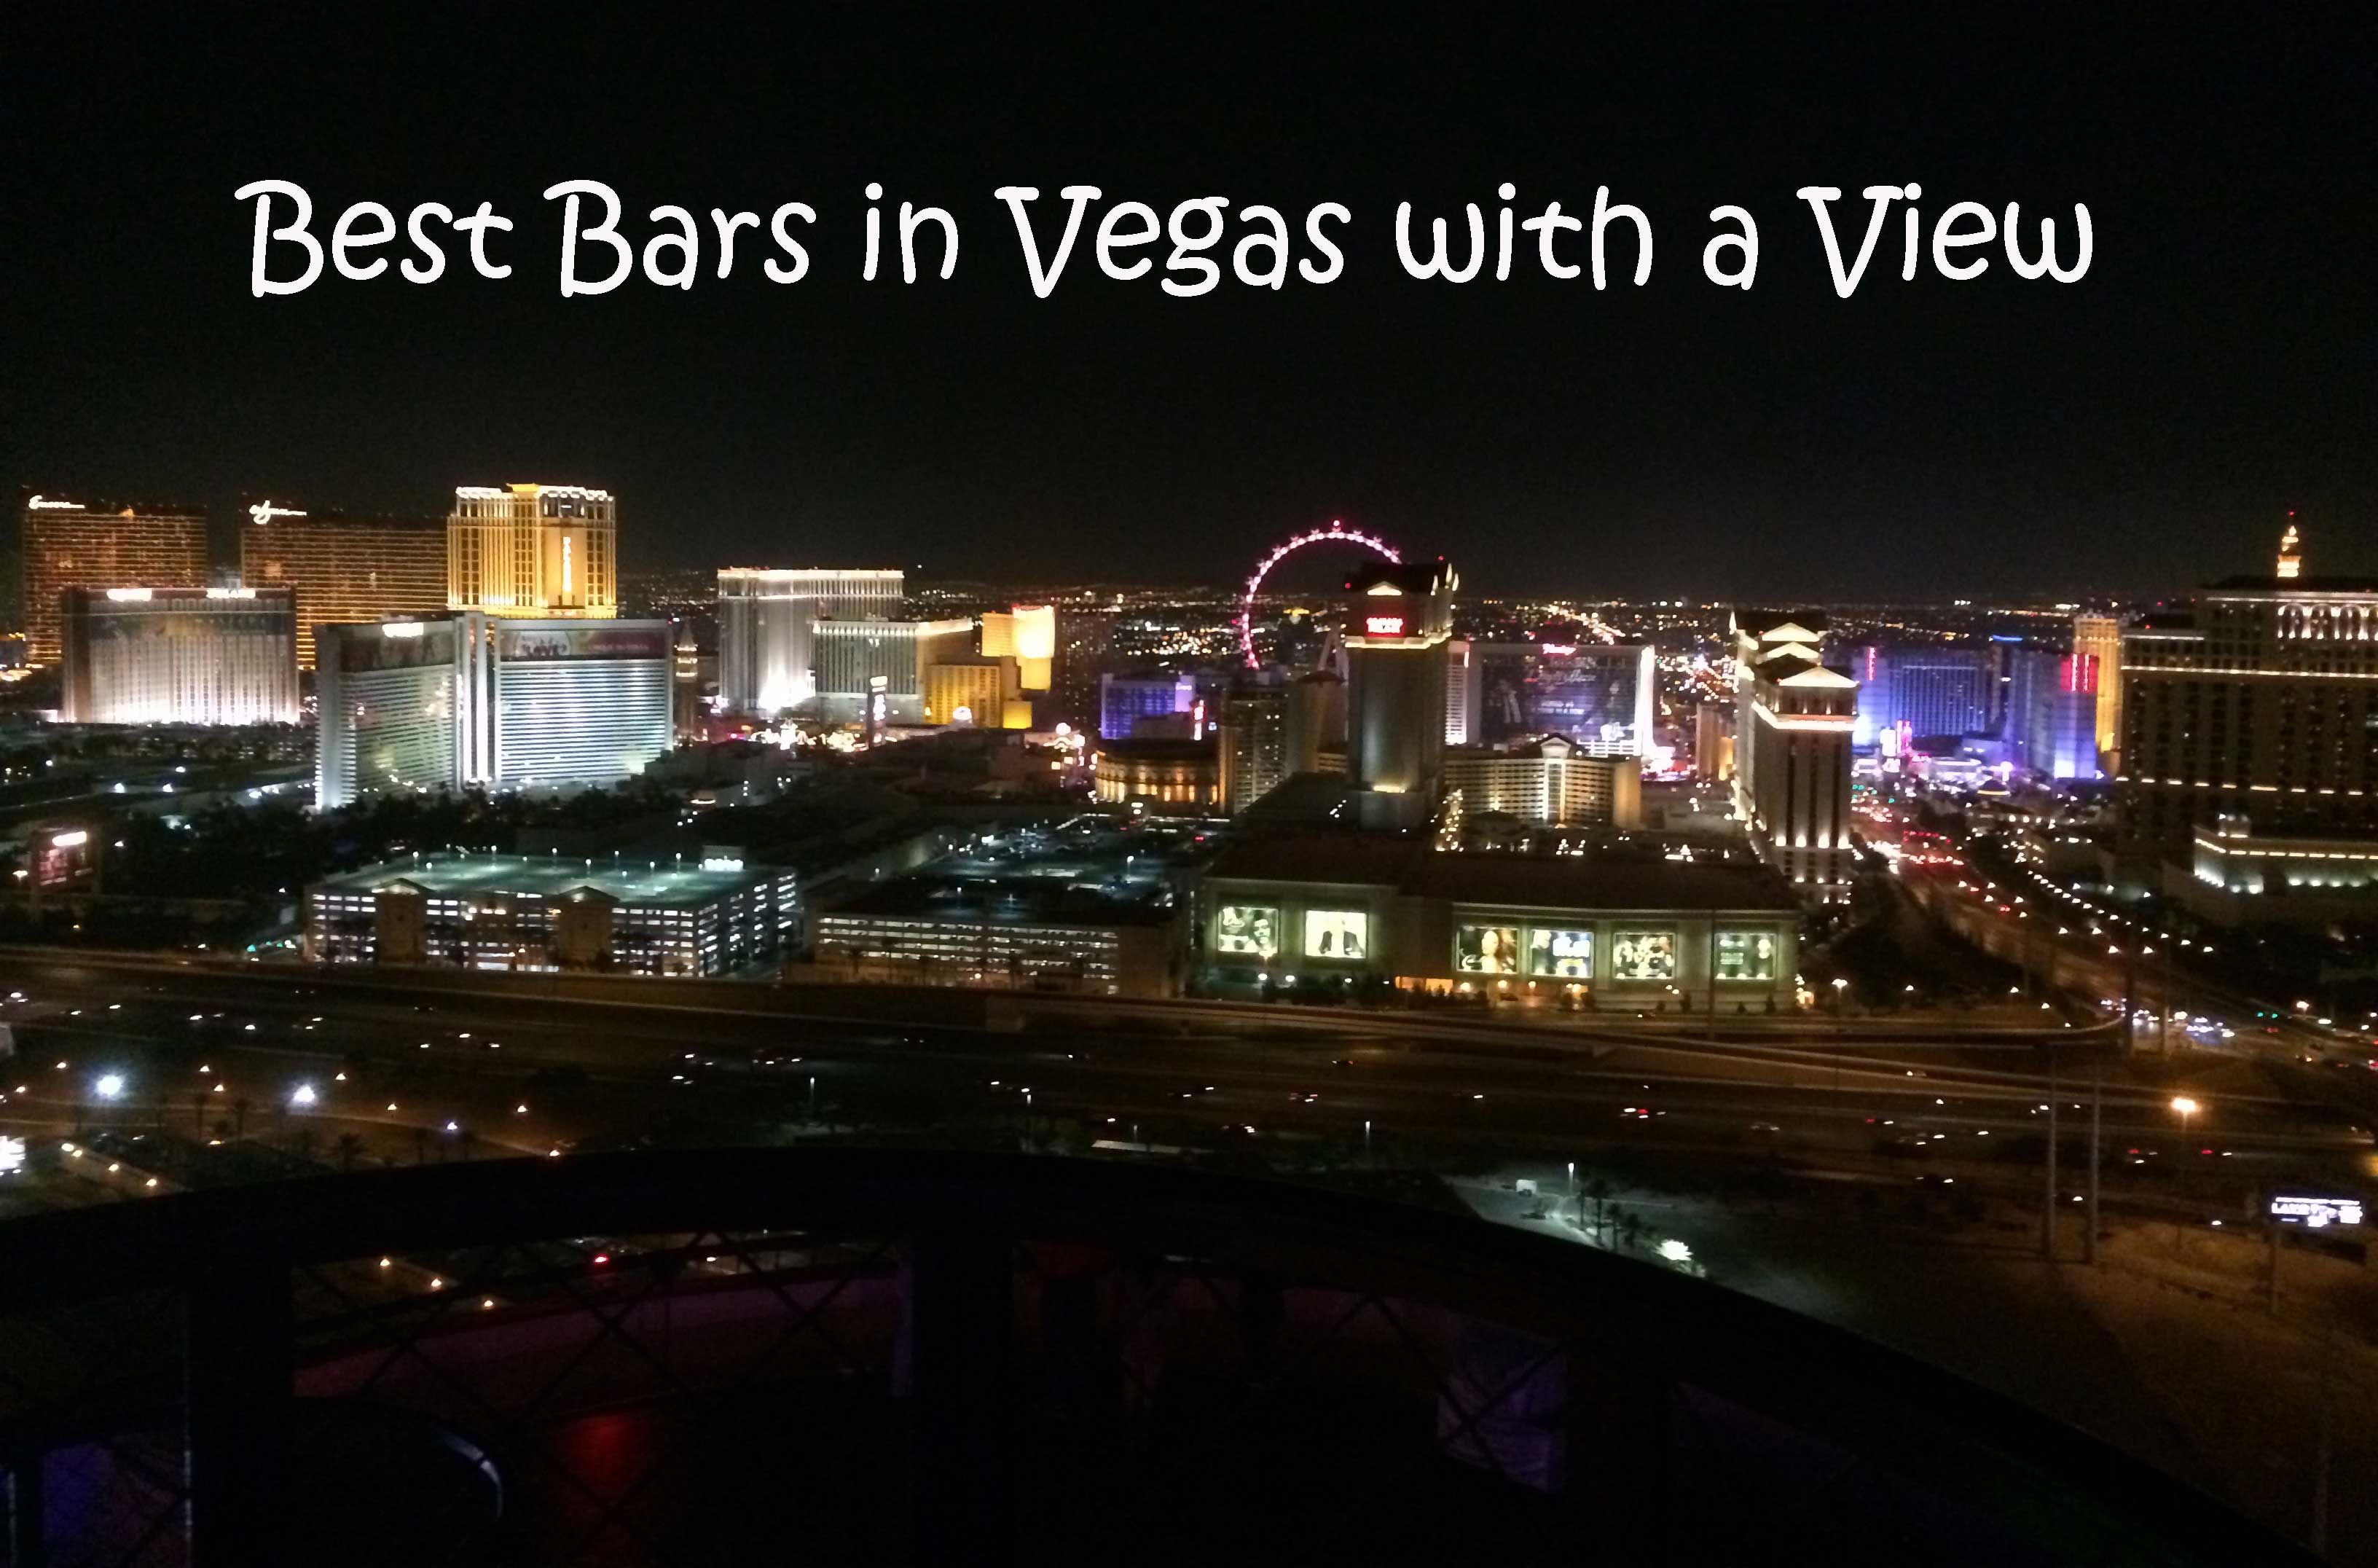 The Best Bars in Vegas with a View - Looking to enjoy a ...